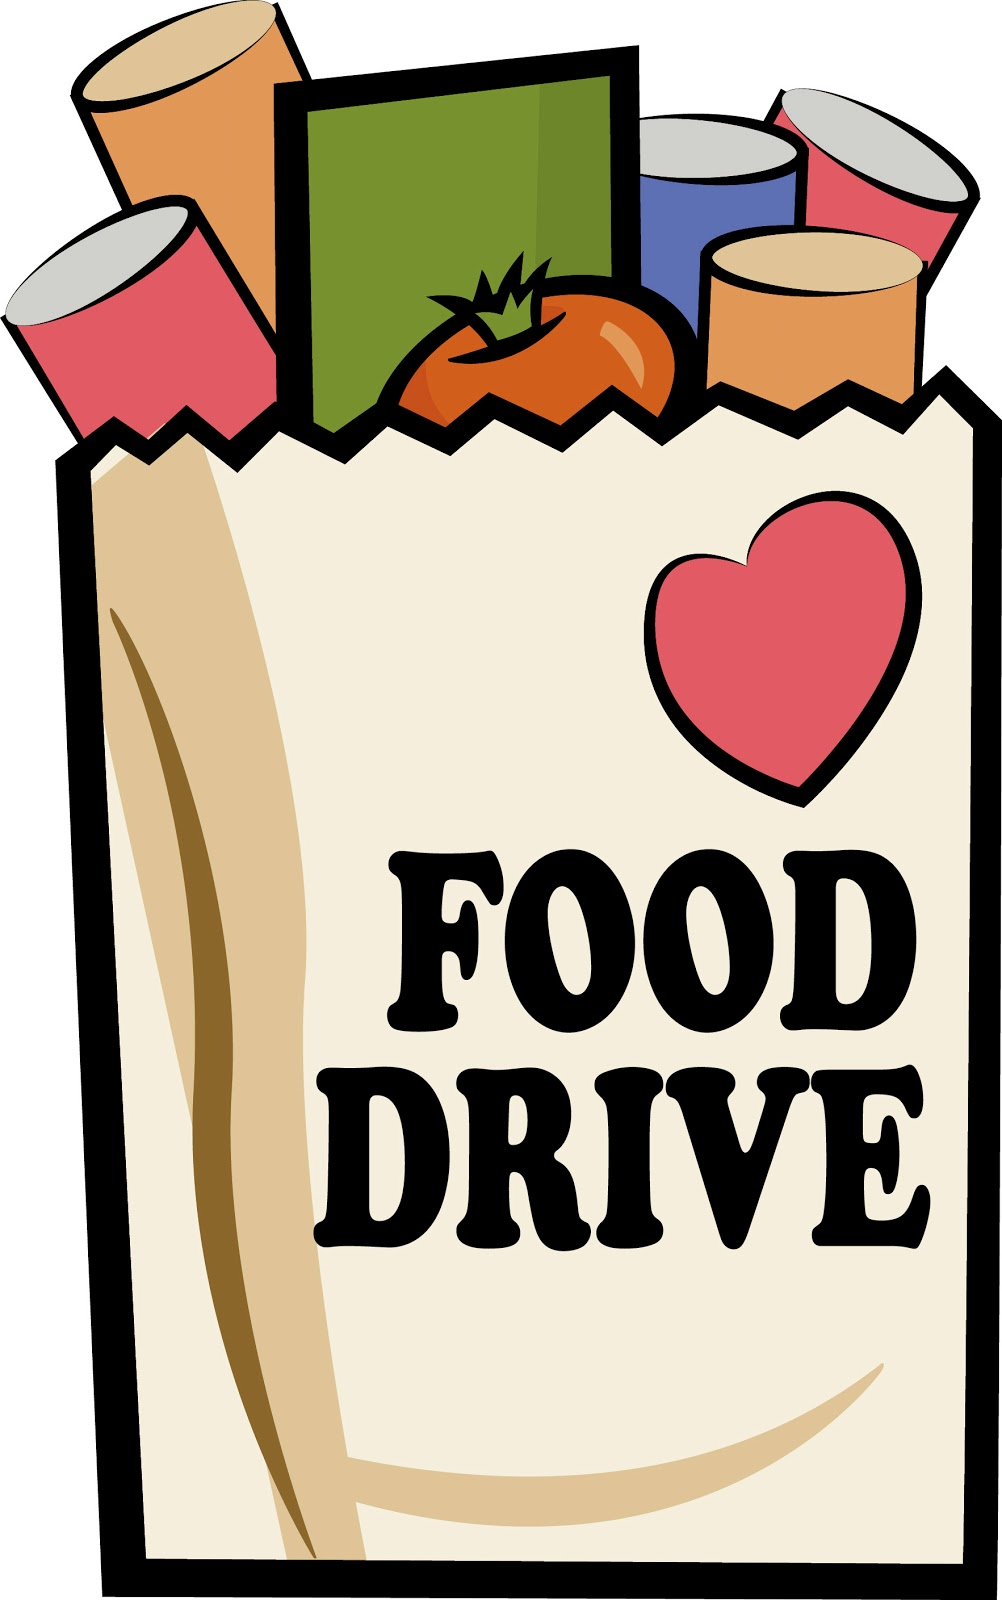 20 food clipart graphic royalty free stock Canned Food Drive Posters | Clipart Panda - Free Clipart Images graphic royalty free stock